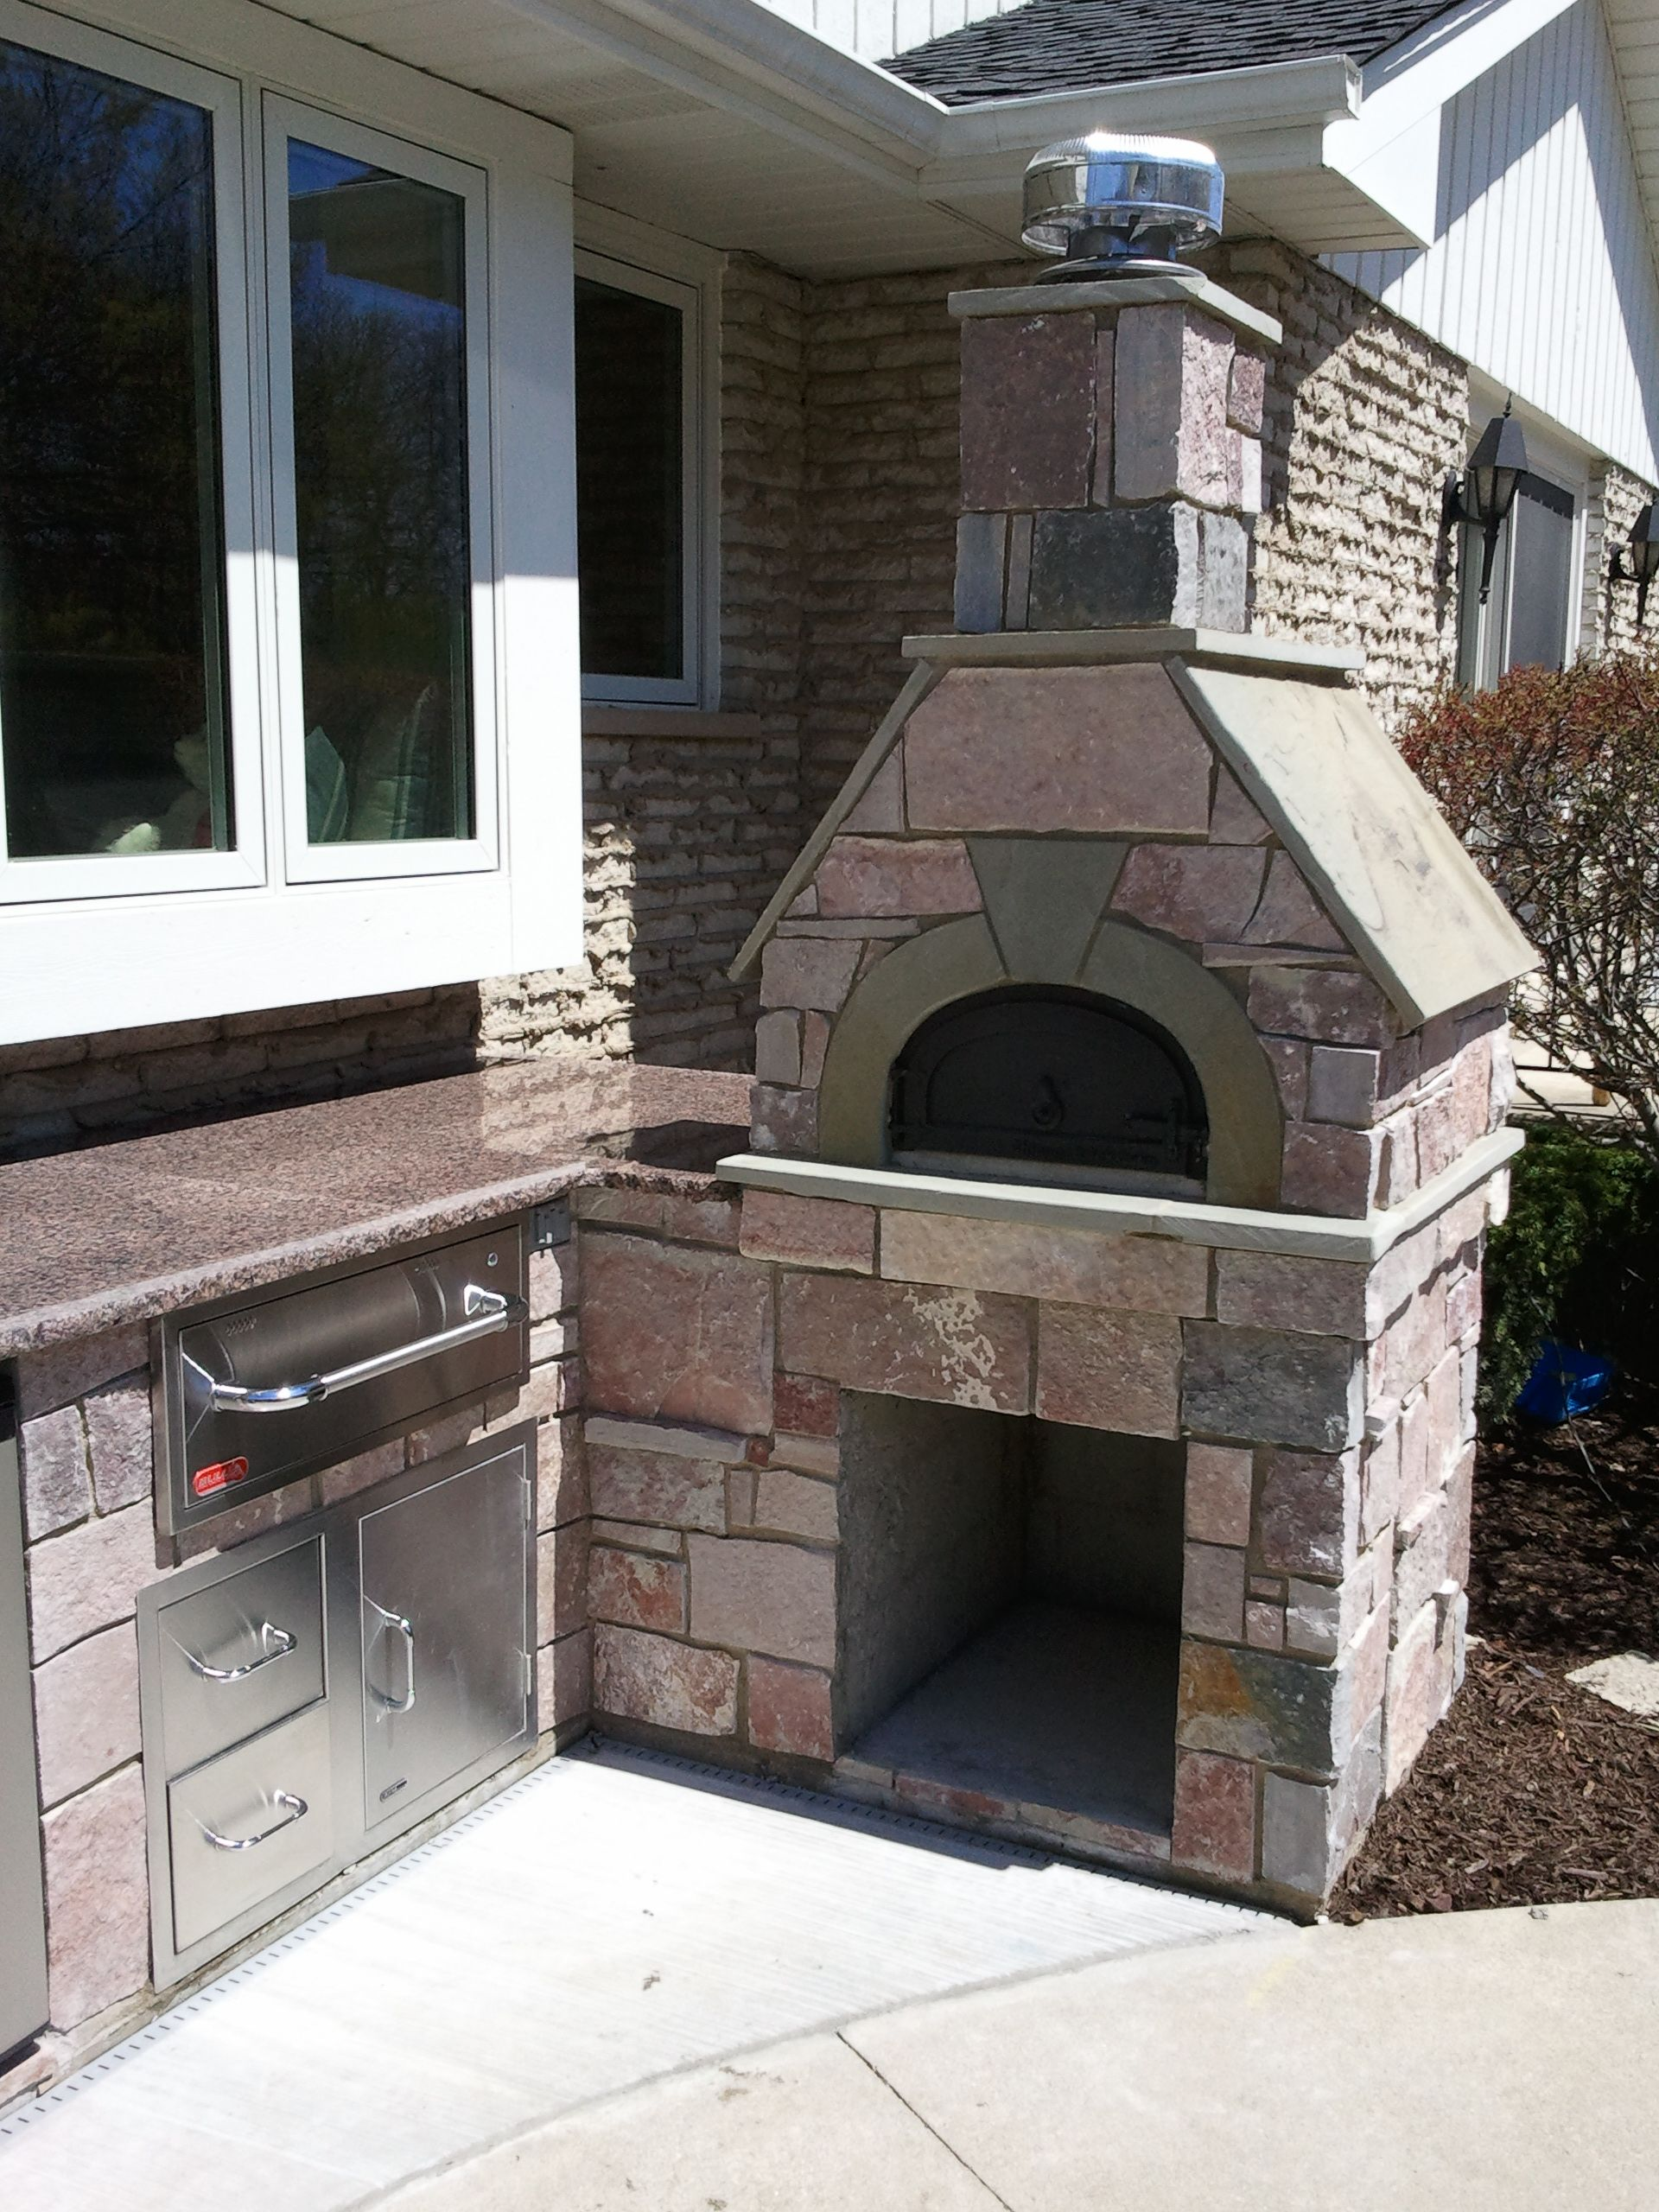 Outdoor Covered Patio With Fireplace Great Addition Idea Dream Dream Dream: Planning Your Dream Outdoor Living Space? A Chicago Brick Oven Is A Great Addition To Any